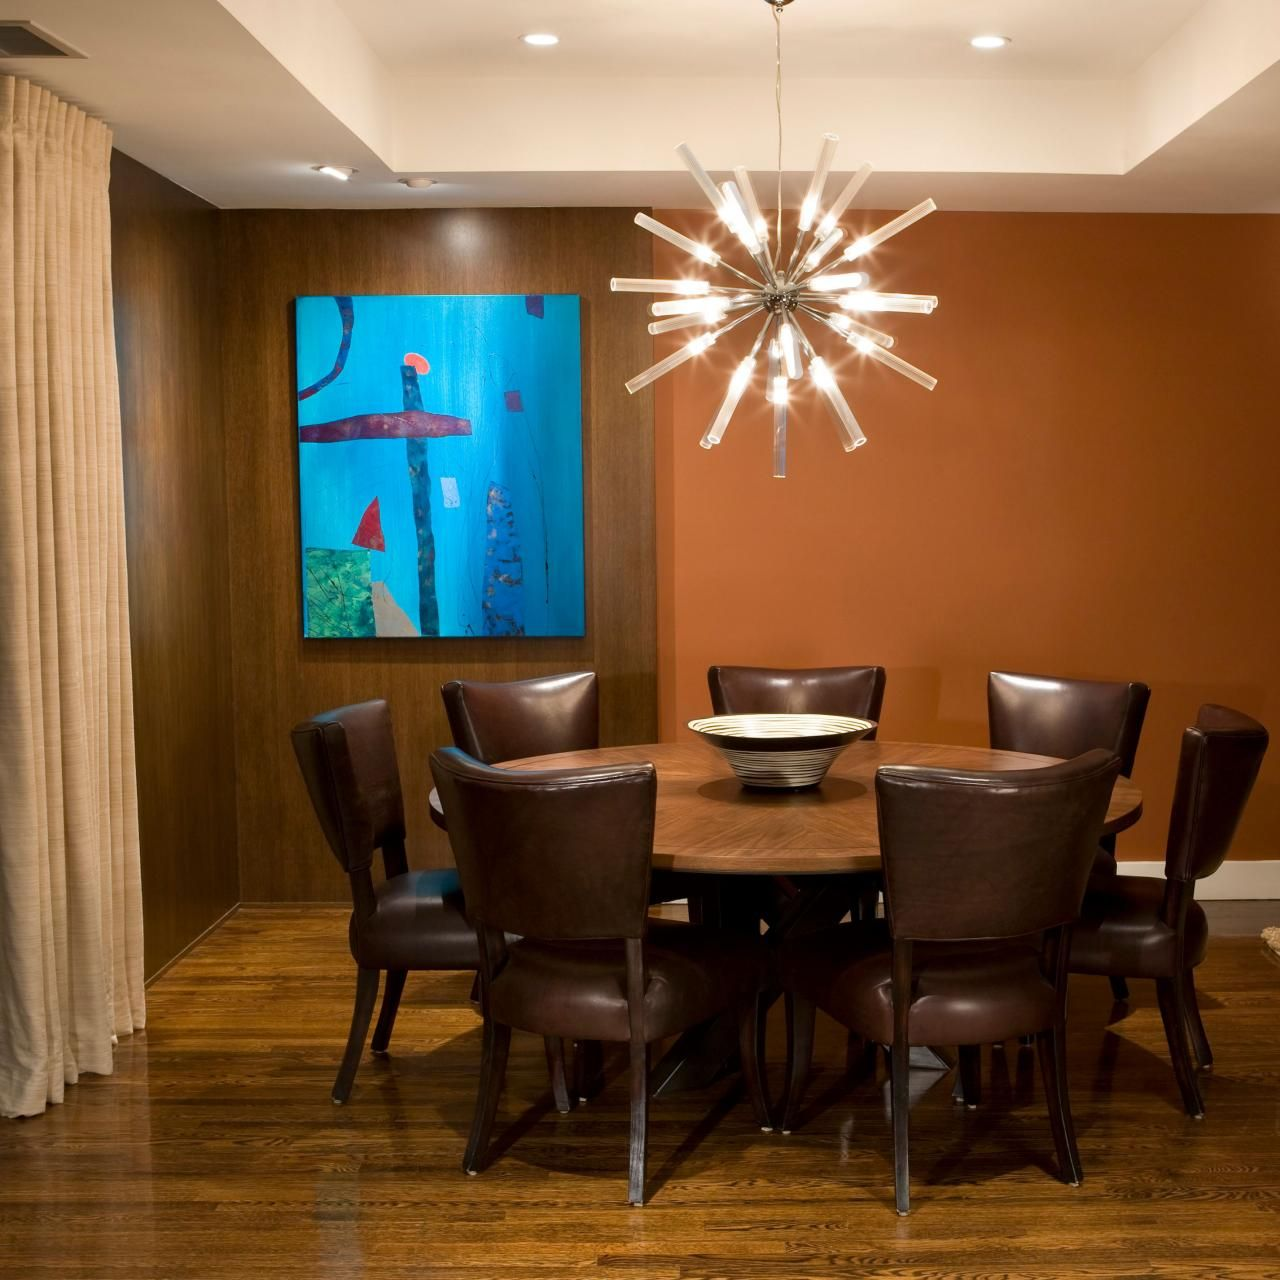 A Sputnik Chandelier Adds A Whimsical Touch To This Midcentury Extraordinary Mid Century Modern Dining Rooms Decorating Inspiration